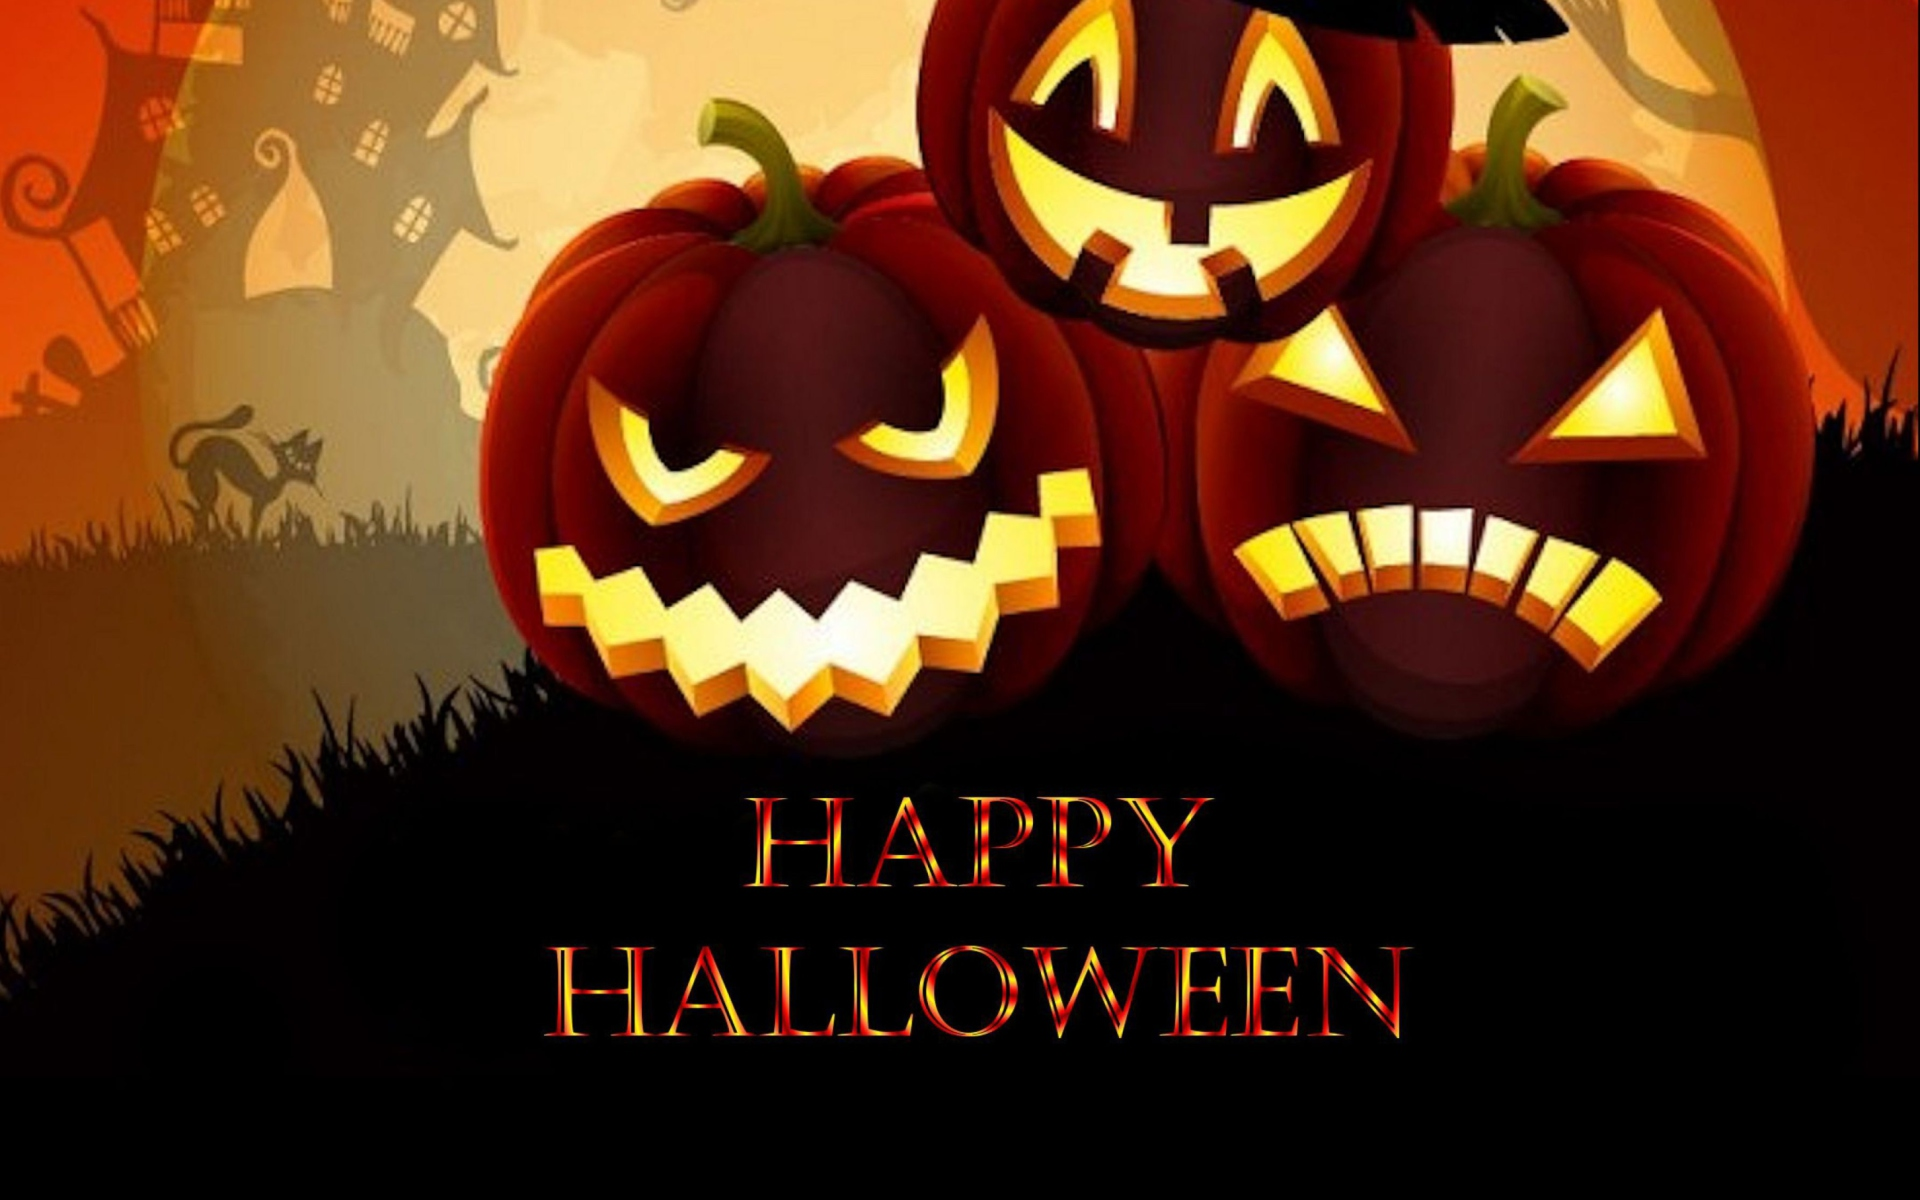 happy halloween wallpapers - photo #21